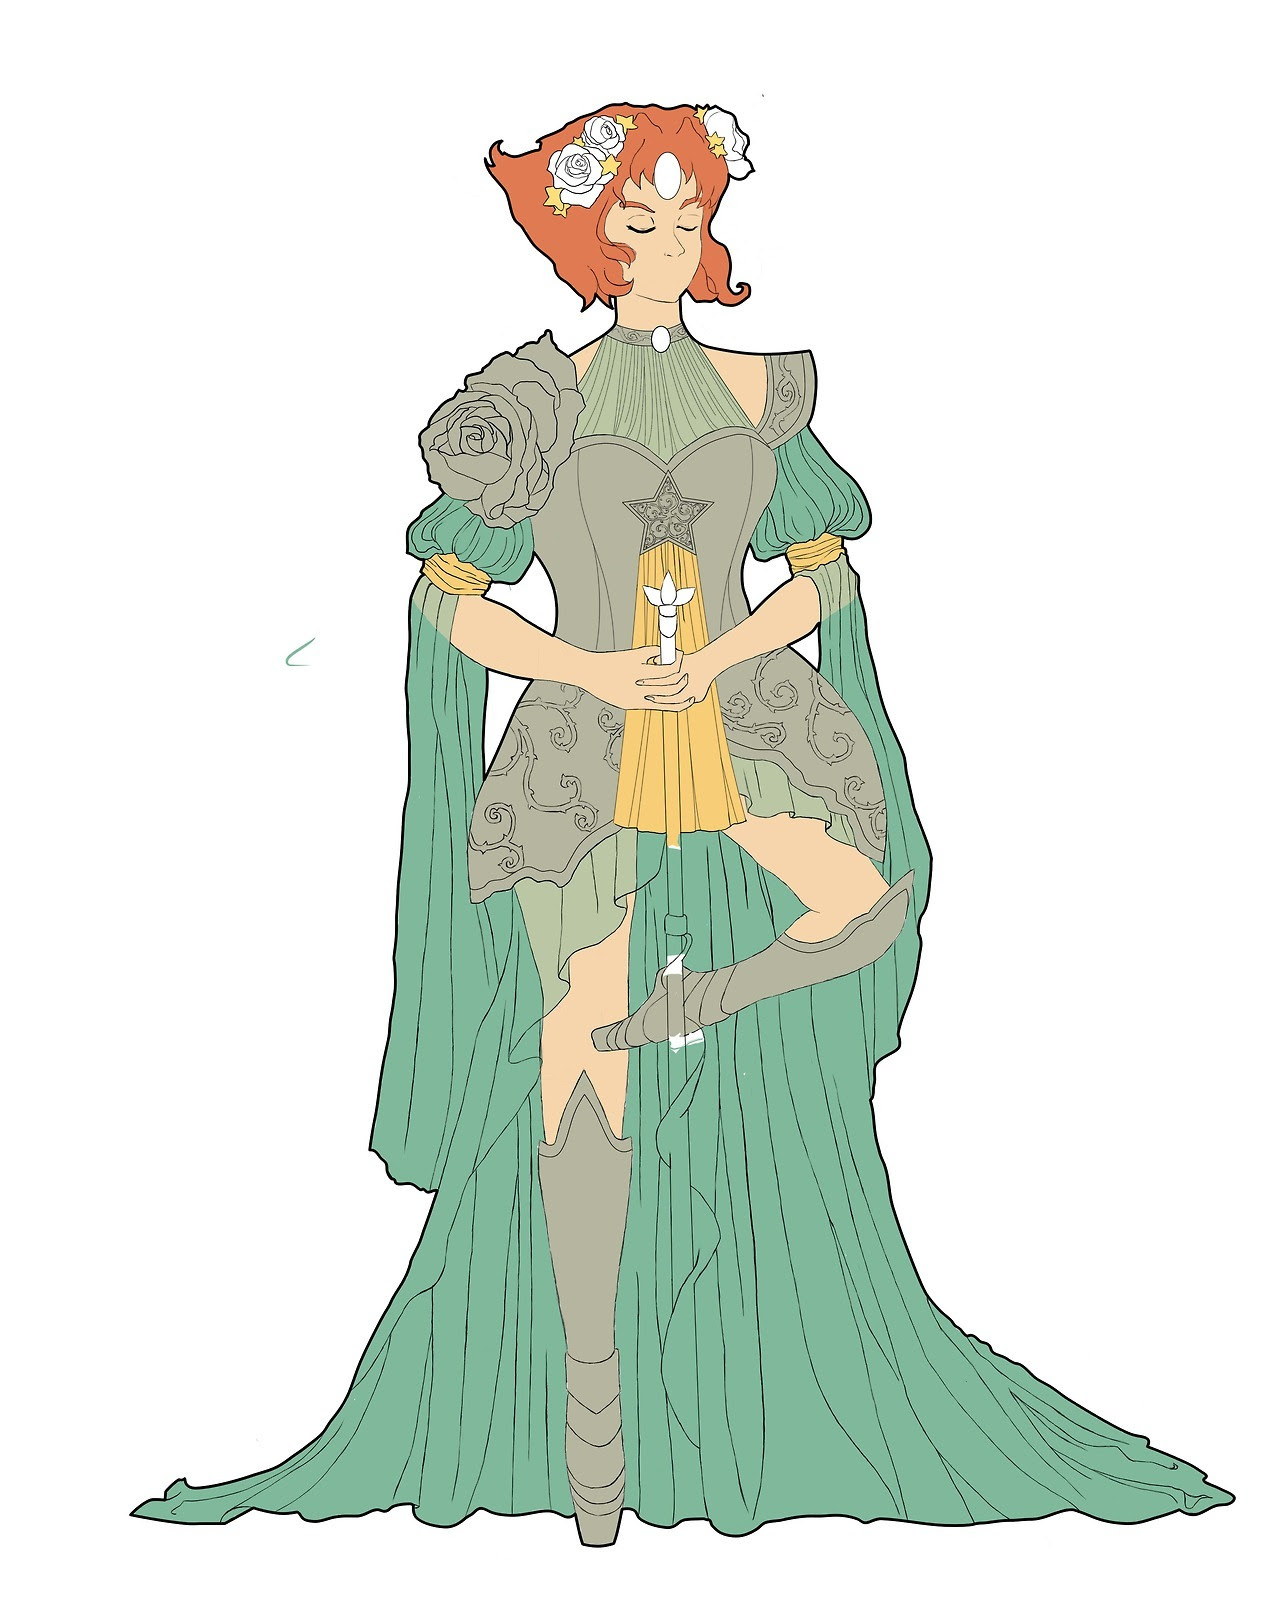 WIP: redo of my art noveau armor Pearl I did about a year ago. Trying out a new color palette, and this time she has a whole leg instead of awkwardly cutting off mid calf.